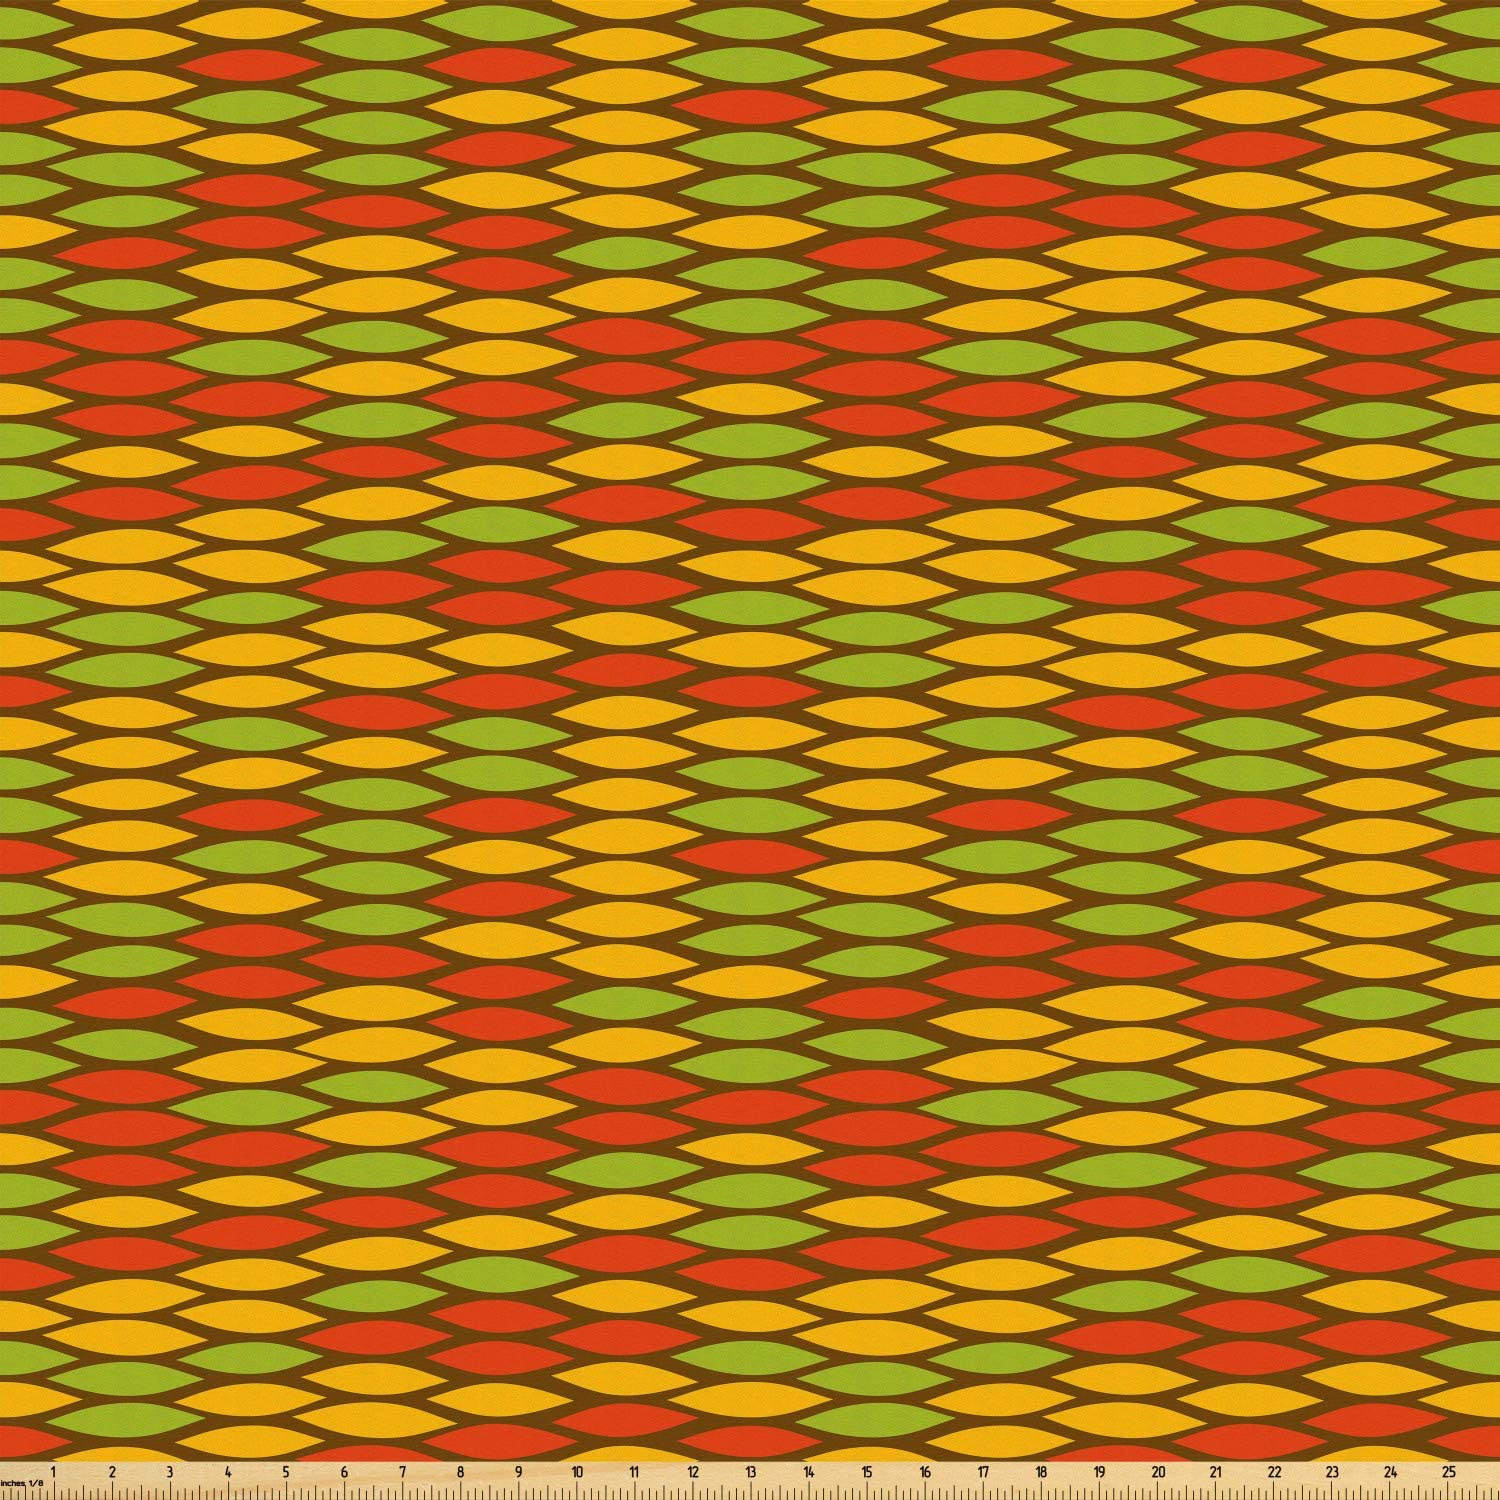 Ambesonne Colorful Fabric by The Yard, Rastafarian Snake Skin Pattern Scale Design in Simplistic Style with Ogee Shapes, Microfiber Fabric for Arts and Crafts Textiles & Decor, Multicolor